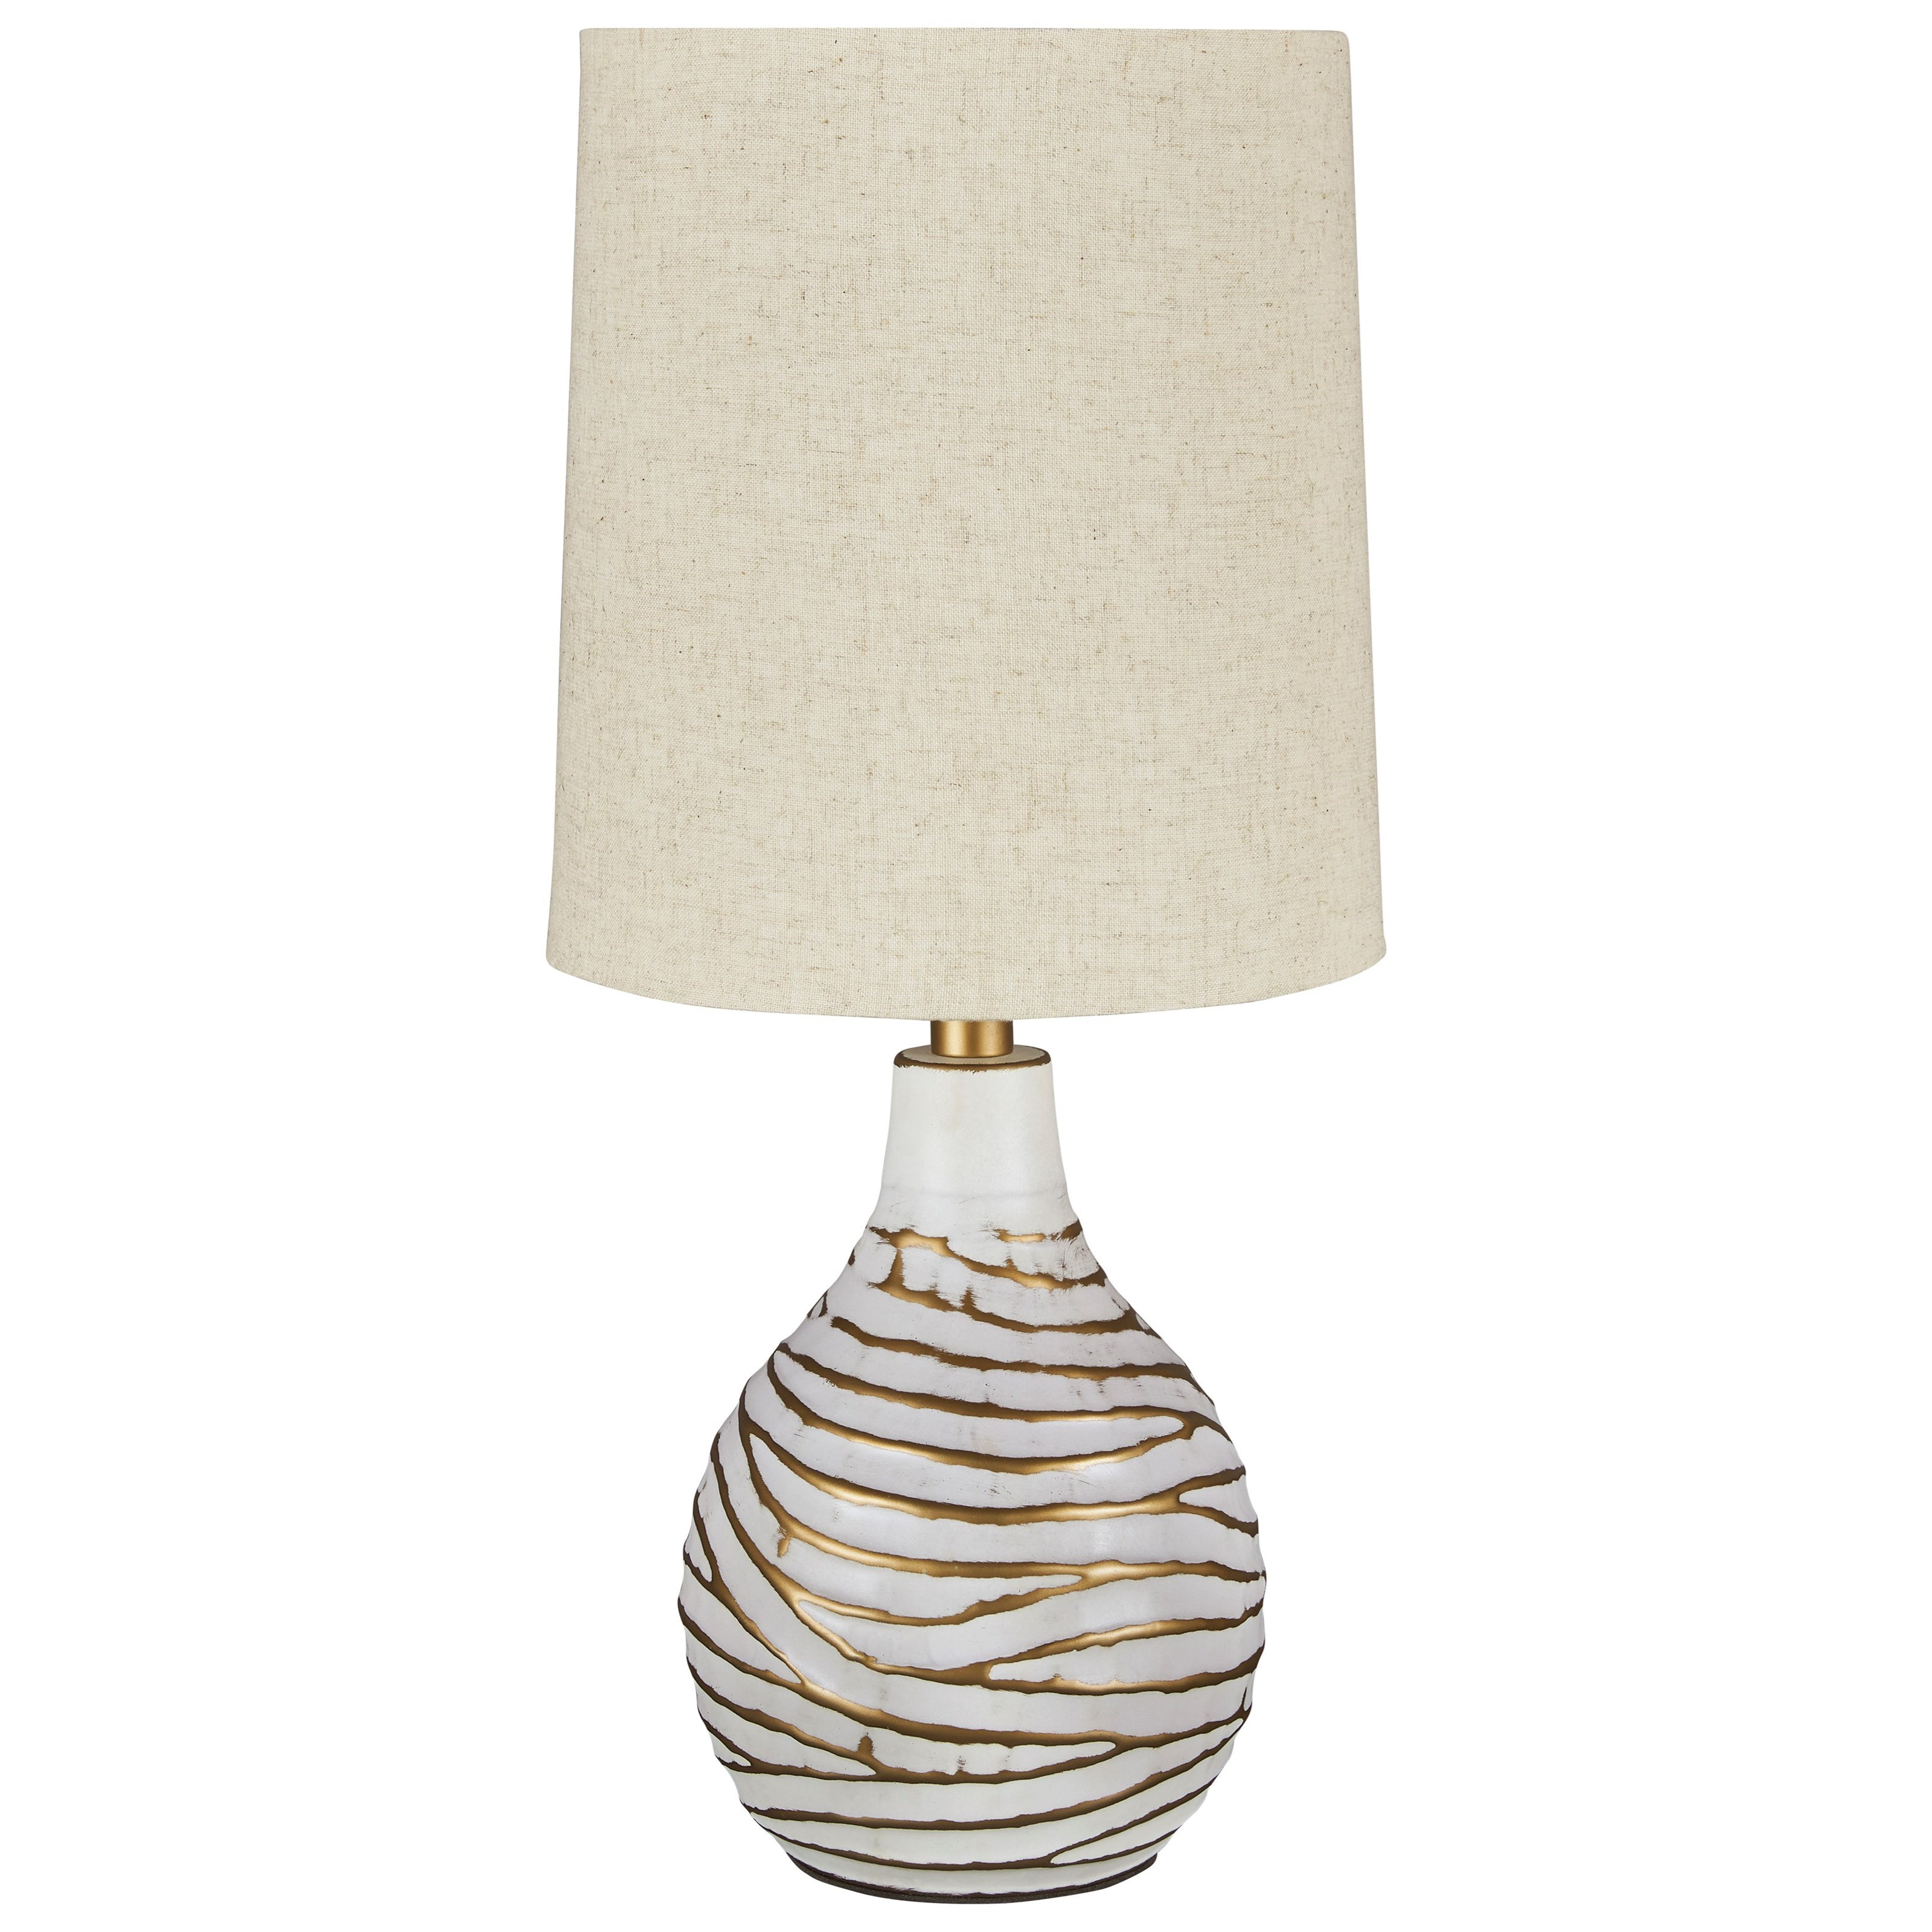 Lamps - Contemporary Aleela White/Gold Table Lamp by Ashley (Signature Design) at Johnny Janosik